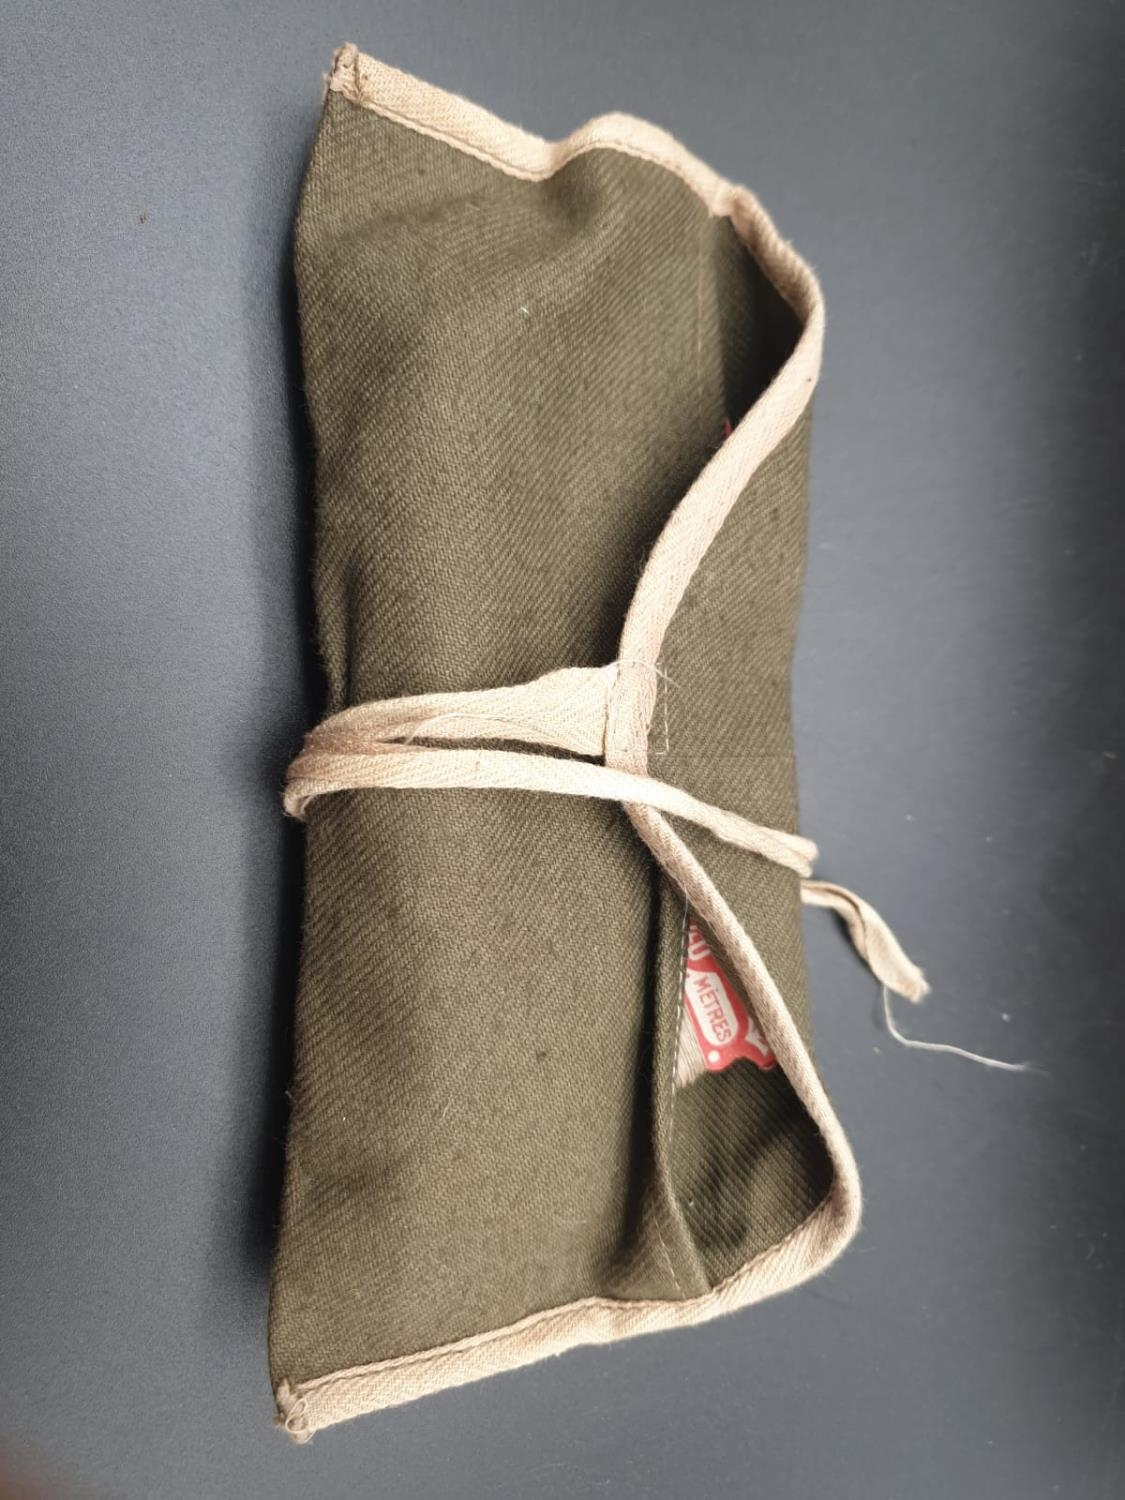 Vietnam War Era French Foreign Legion ?House Wife? Sewing Kit. The handle unscrews to stow the - Image 6 of 6